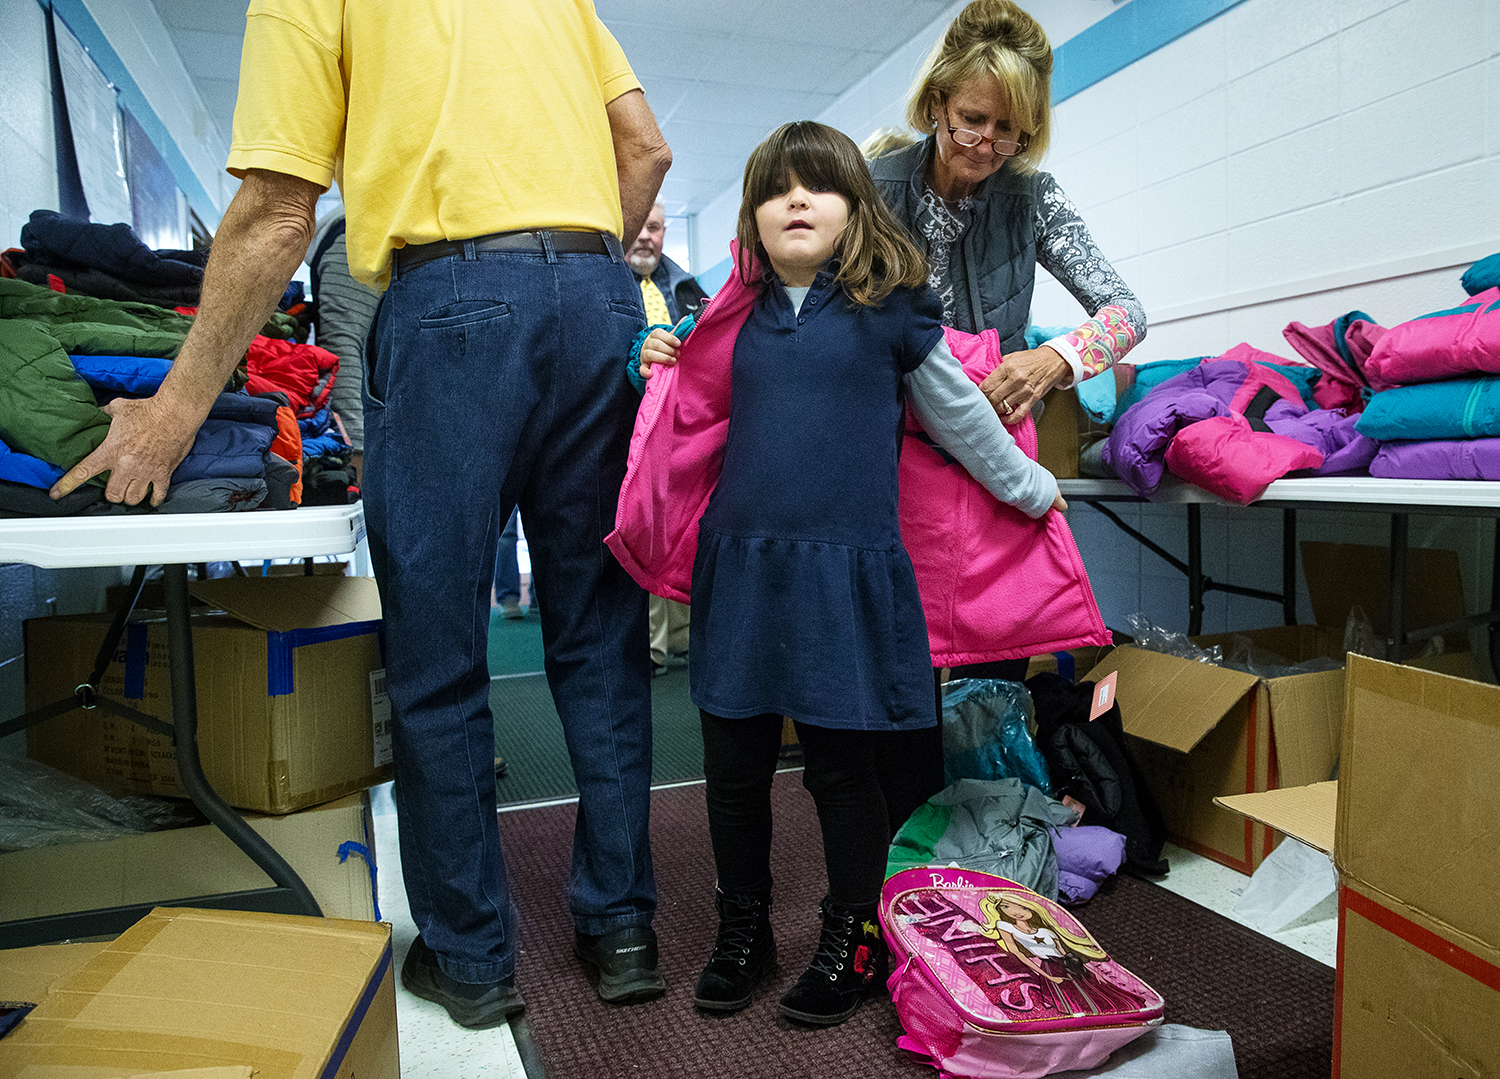 Chloe Harris is helped into a new coat by Liz Murer at Graham Elementary School Monday, Nov. 19, 2018. The Rotary Club of Springfield Sunrise brought more than 90 brand new coats for distribution at Graham Elementary School. Remaining coats will be distributed at Christmas holiday event and given to The Matthew Project. [Ted Schurter/The State Journal-Register]